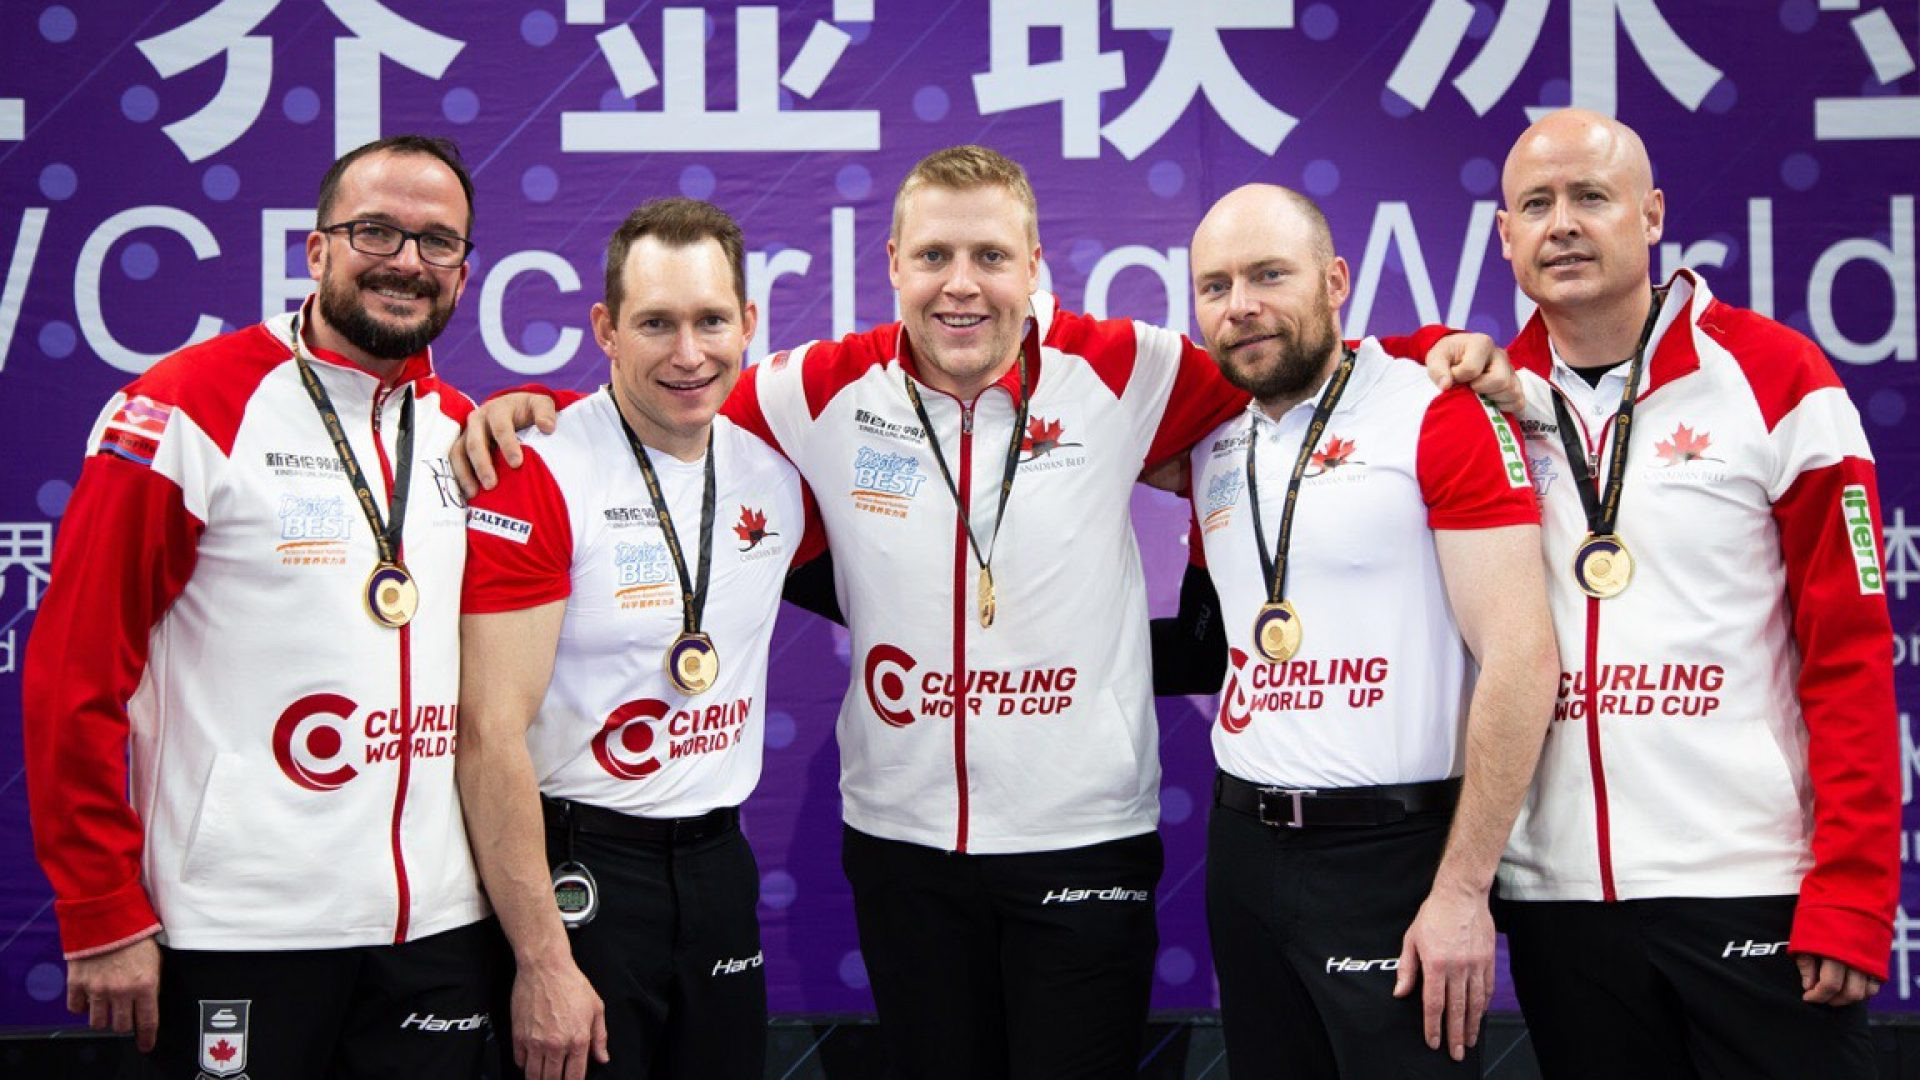 Canada 2 beat the hosts in the men's final at the Curling World Cup Grand Final in Beijing ©World Curling